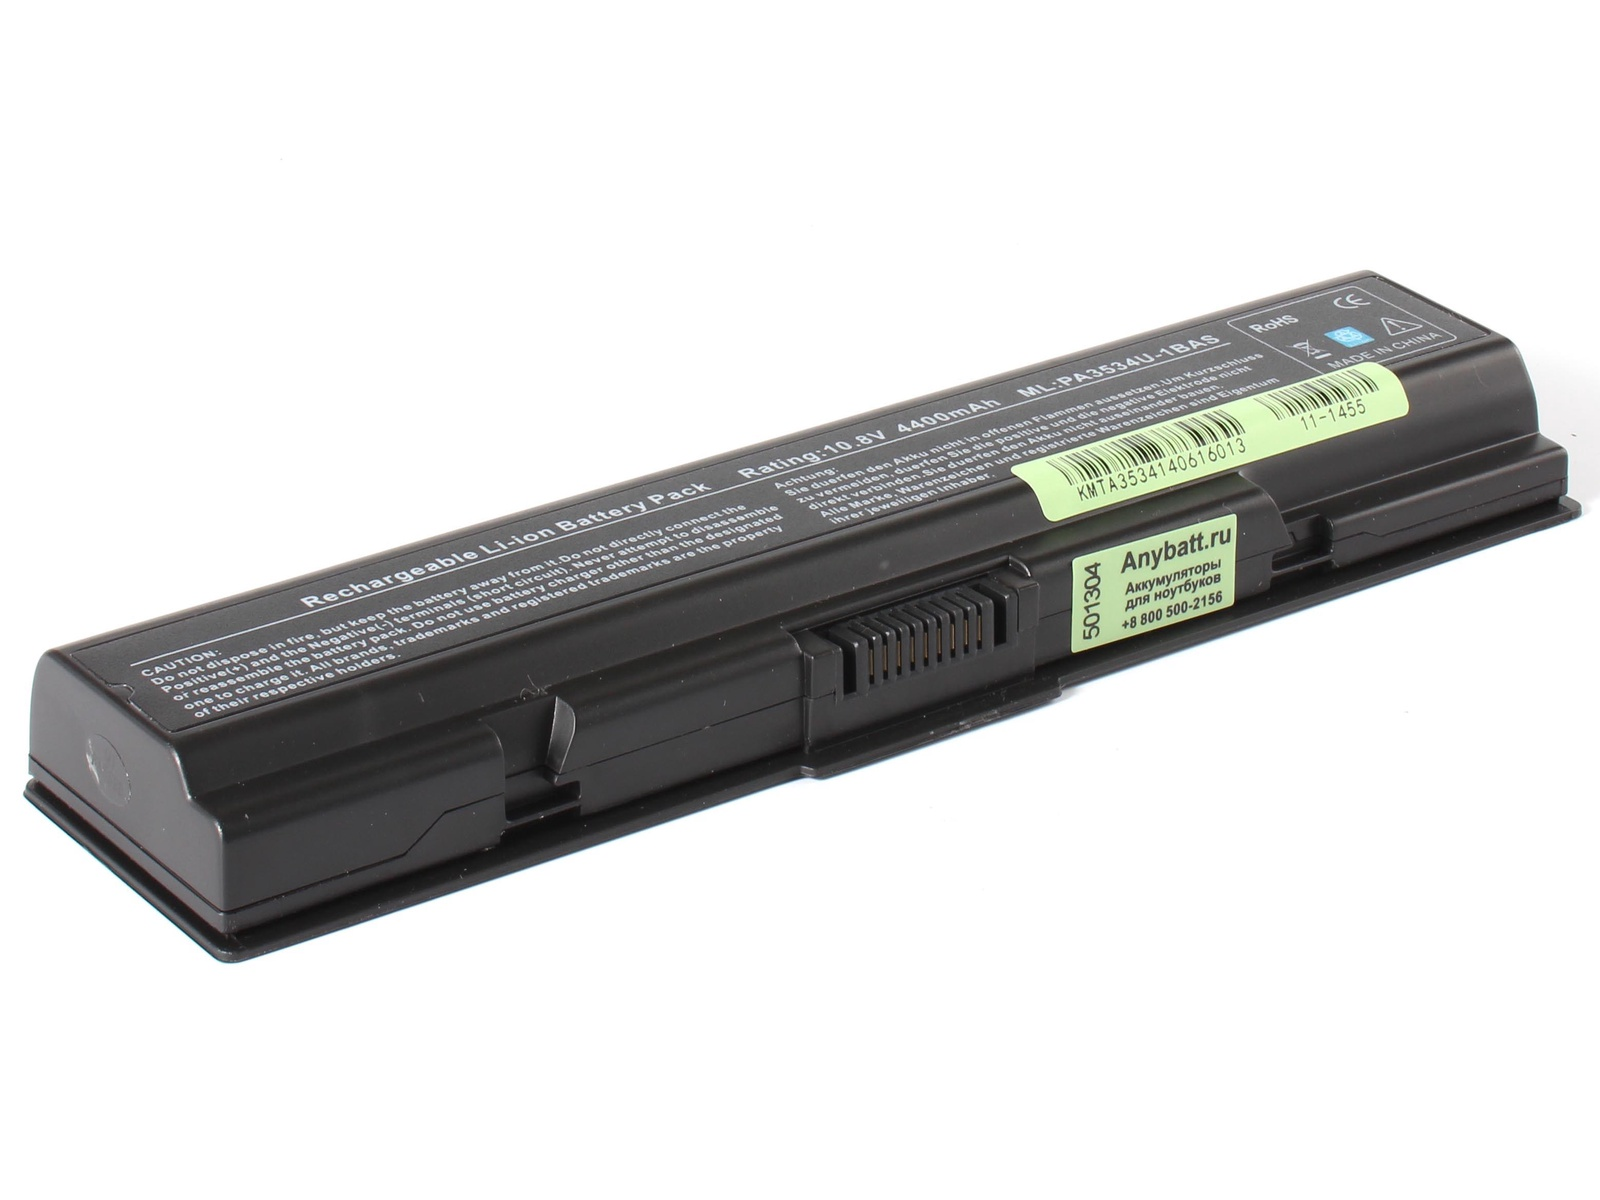 Аккумулятор для ноутбука AnyBatt для ToshiBa Satellite L300-10Q, Satellite L300-20D, Satellite L300D-242, Satellite L305D-S5934, Satellite L455-S5975, Satellite L500-1EN, Satellite Pro A210, Satellite Pro A210-EZ2202X original cc03main mainboard main board for epson l455 l550 l551 l555 l558 wf 2520 wf 2530 printer formatter